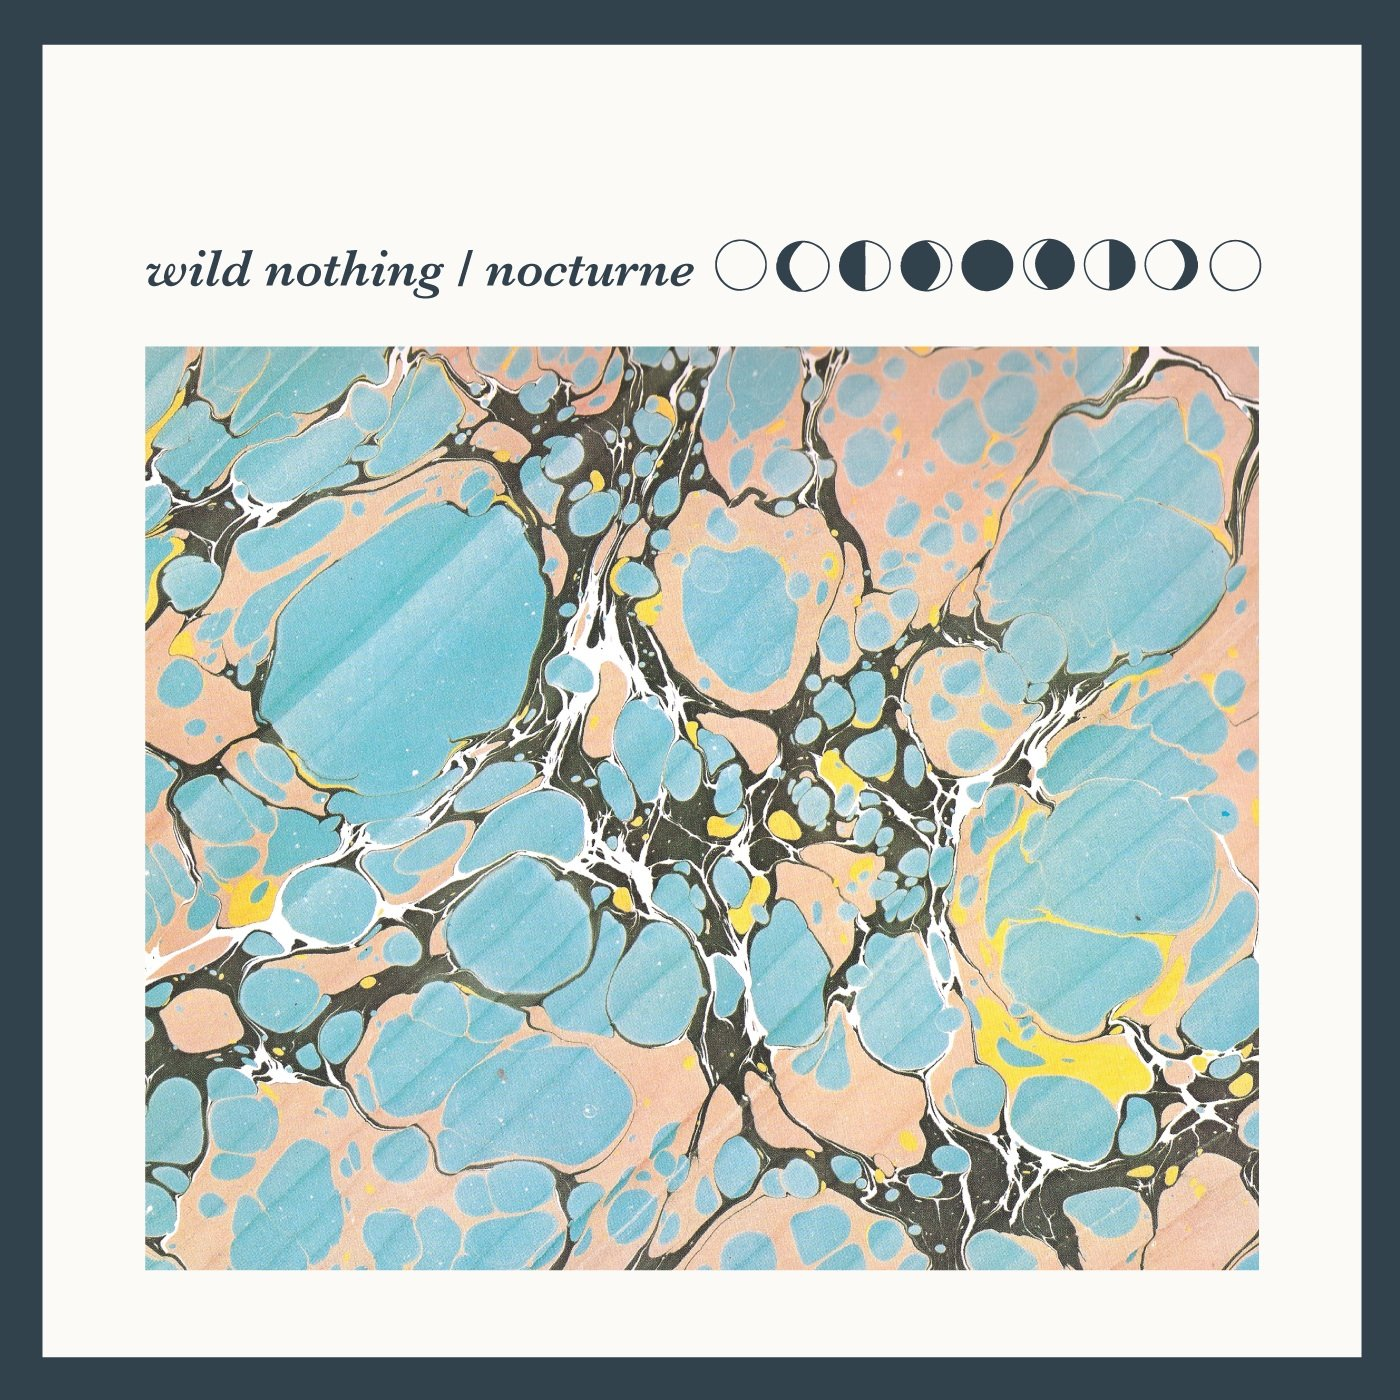 CD : Wild Nothing - Nocturne (CD)